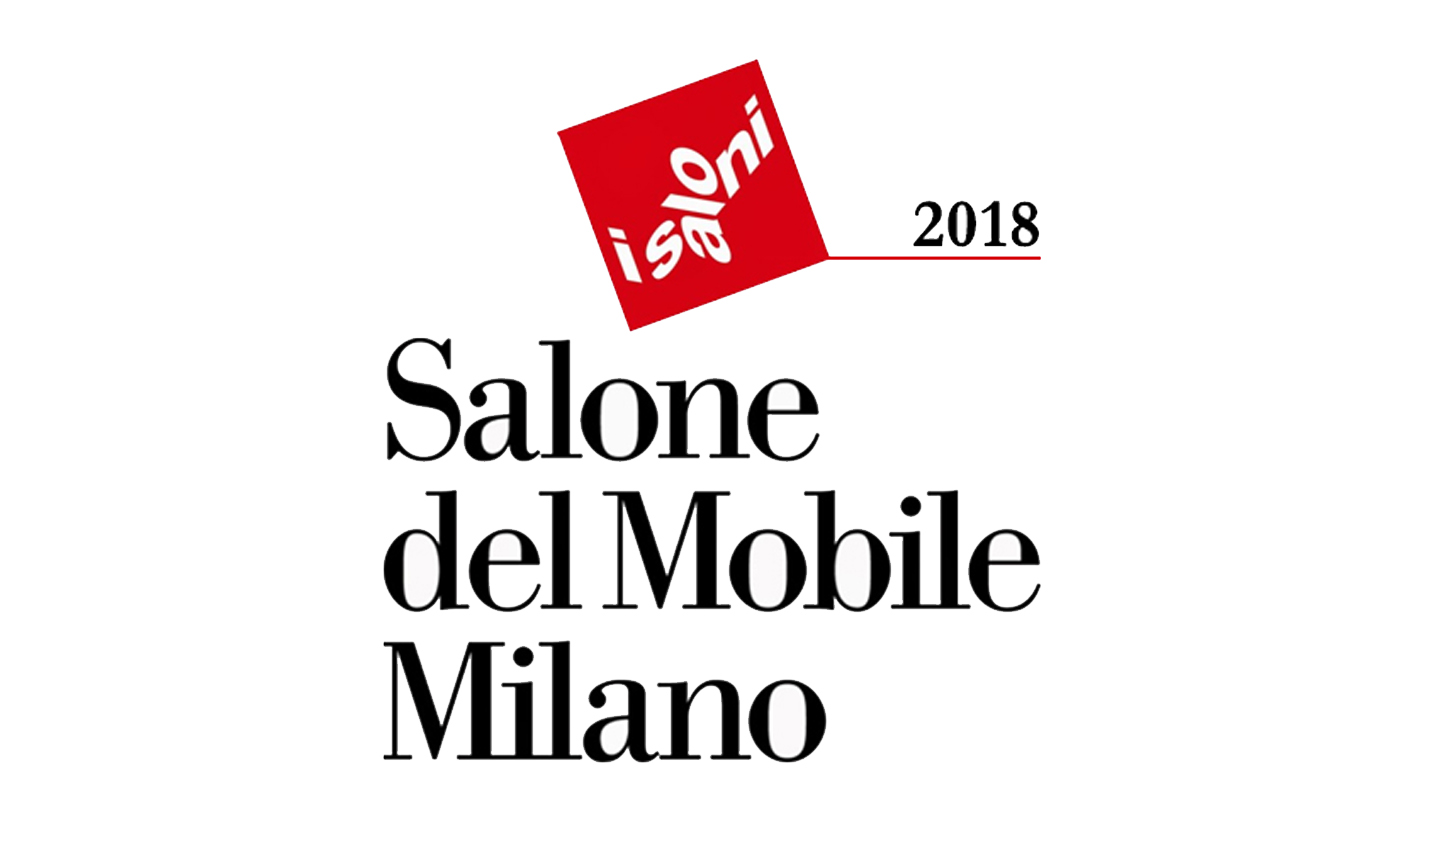 Meet The Winners of the CovetED Awards Presented at iSaloni 2018 hotels Luxury in Greece: amazing hotels to discover Meet The Winners of the CovetED Awards Presented at iSaloni 2018 01 hotels Luxury in Greece: amazing hotels to discover Meet The Winners of the CovetED Awards Presented at iSaloni 2018 01